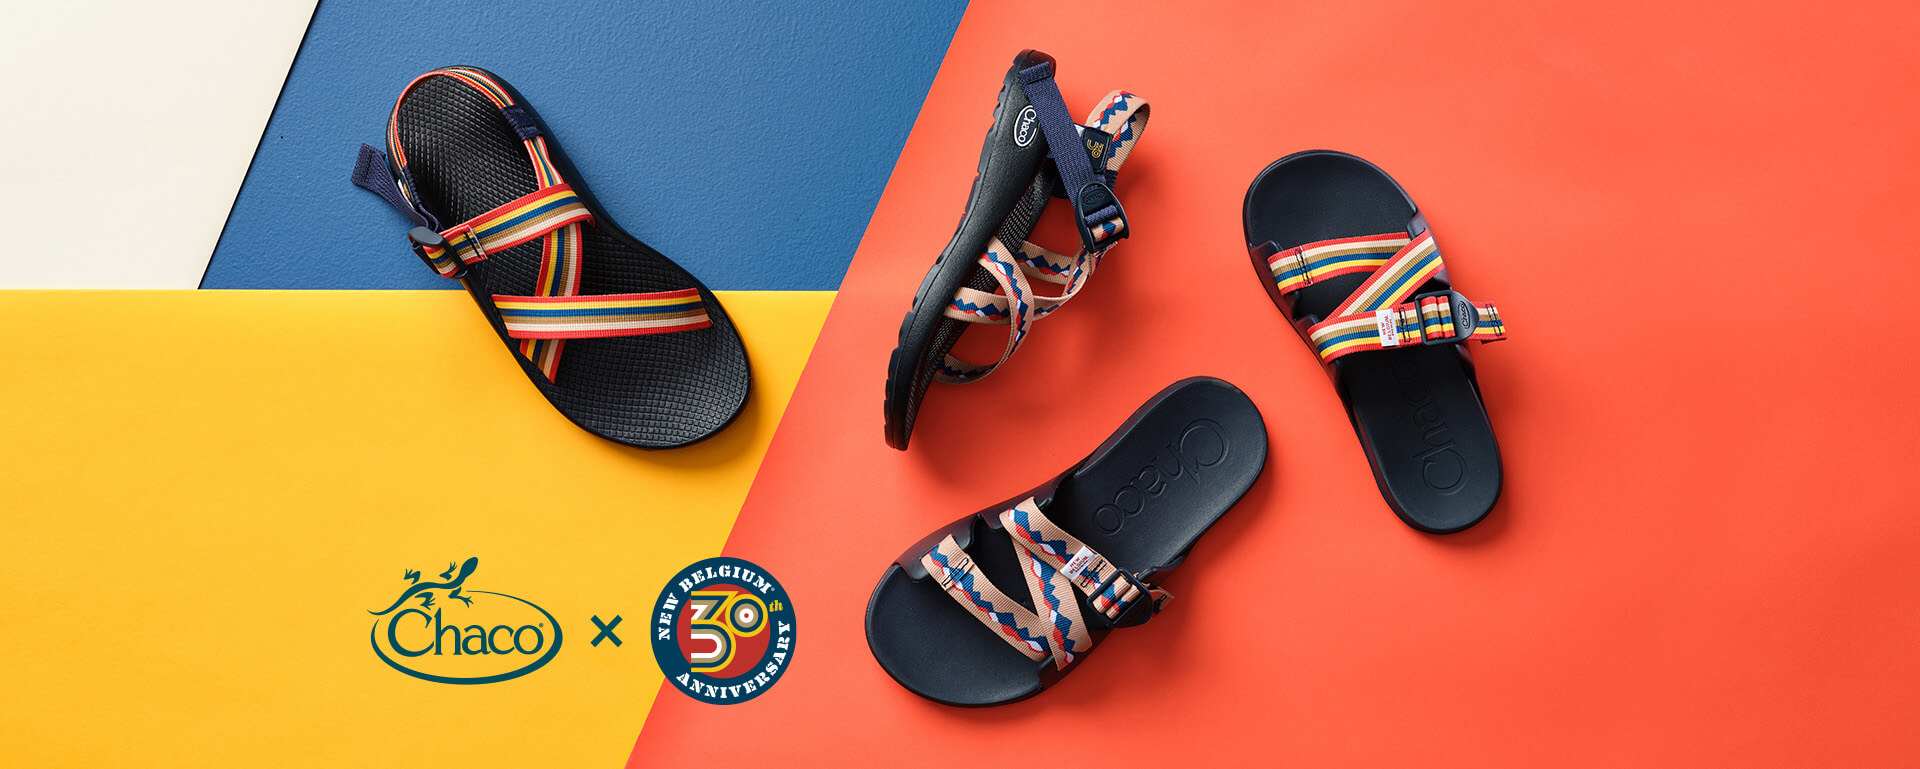 Selection of Chaco and New Belgium Brewing collaborative sandals on a colorful, geometric background, with Chaco x New Belgium 30th anniversary logo.